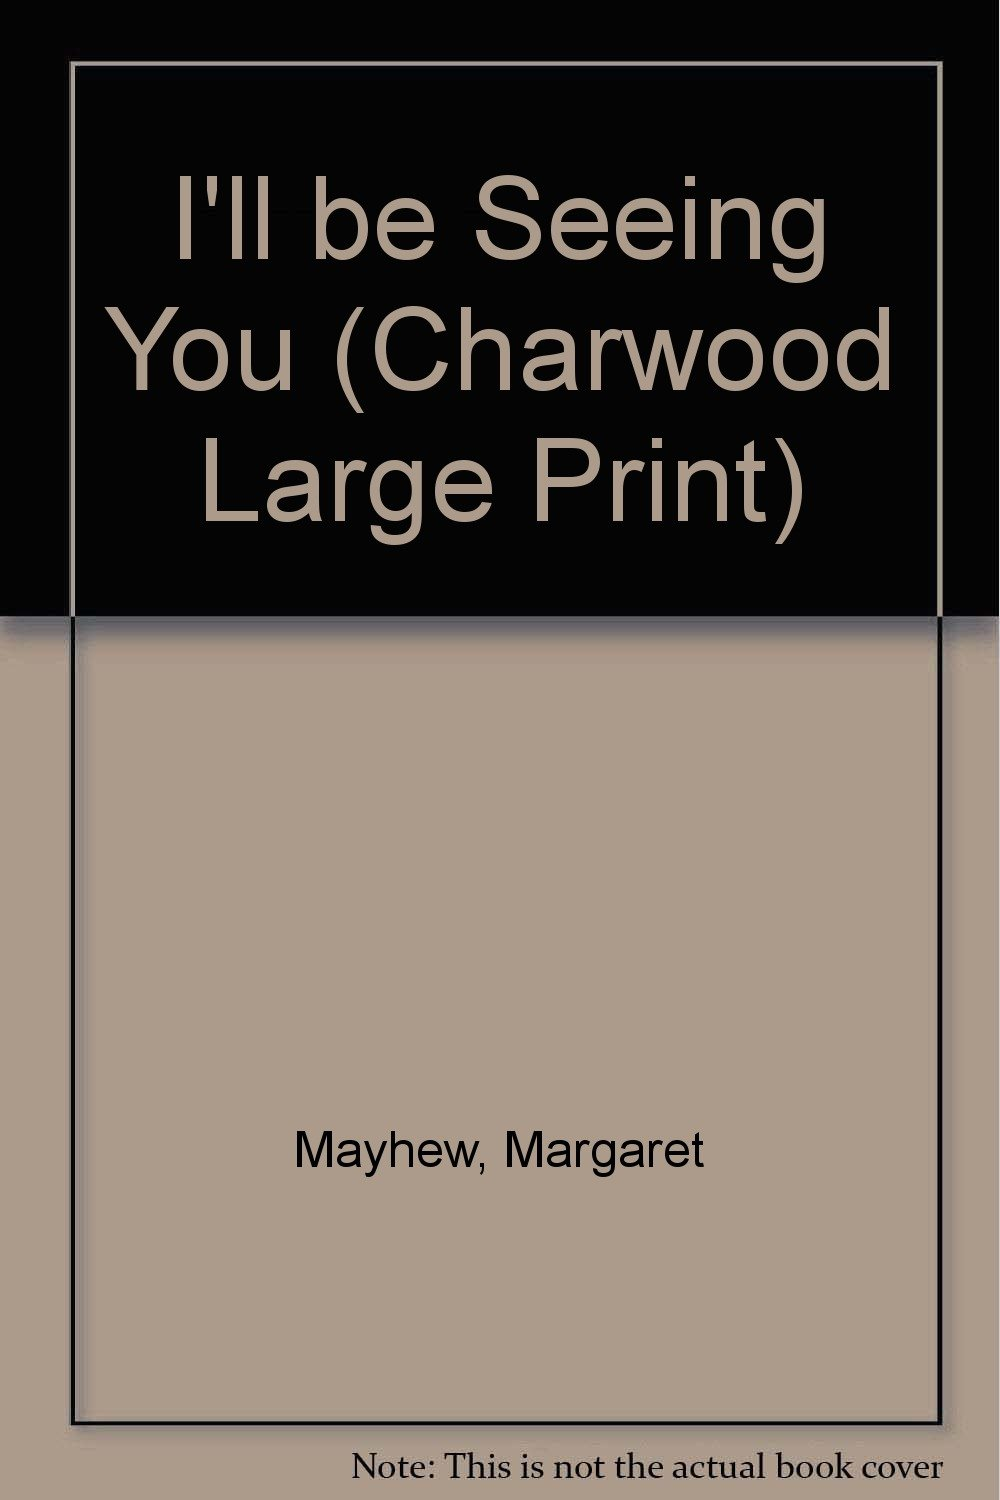 I'll be Seeing You (Charwood Large Print): Amazon.co.uk: Margaret Mayhew:  9781843956617: Books